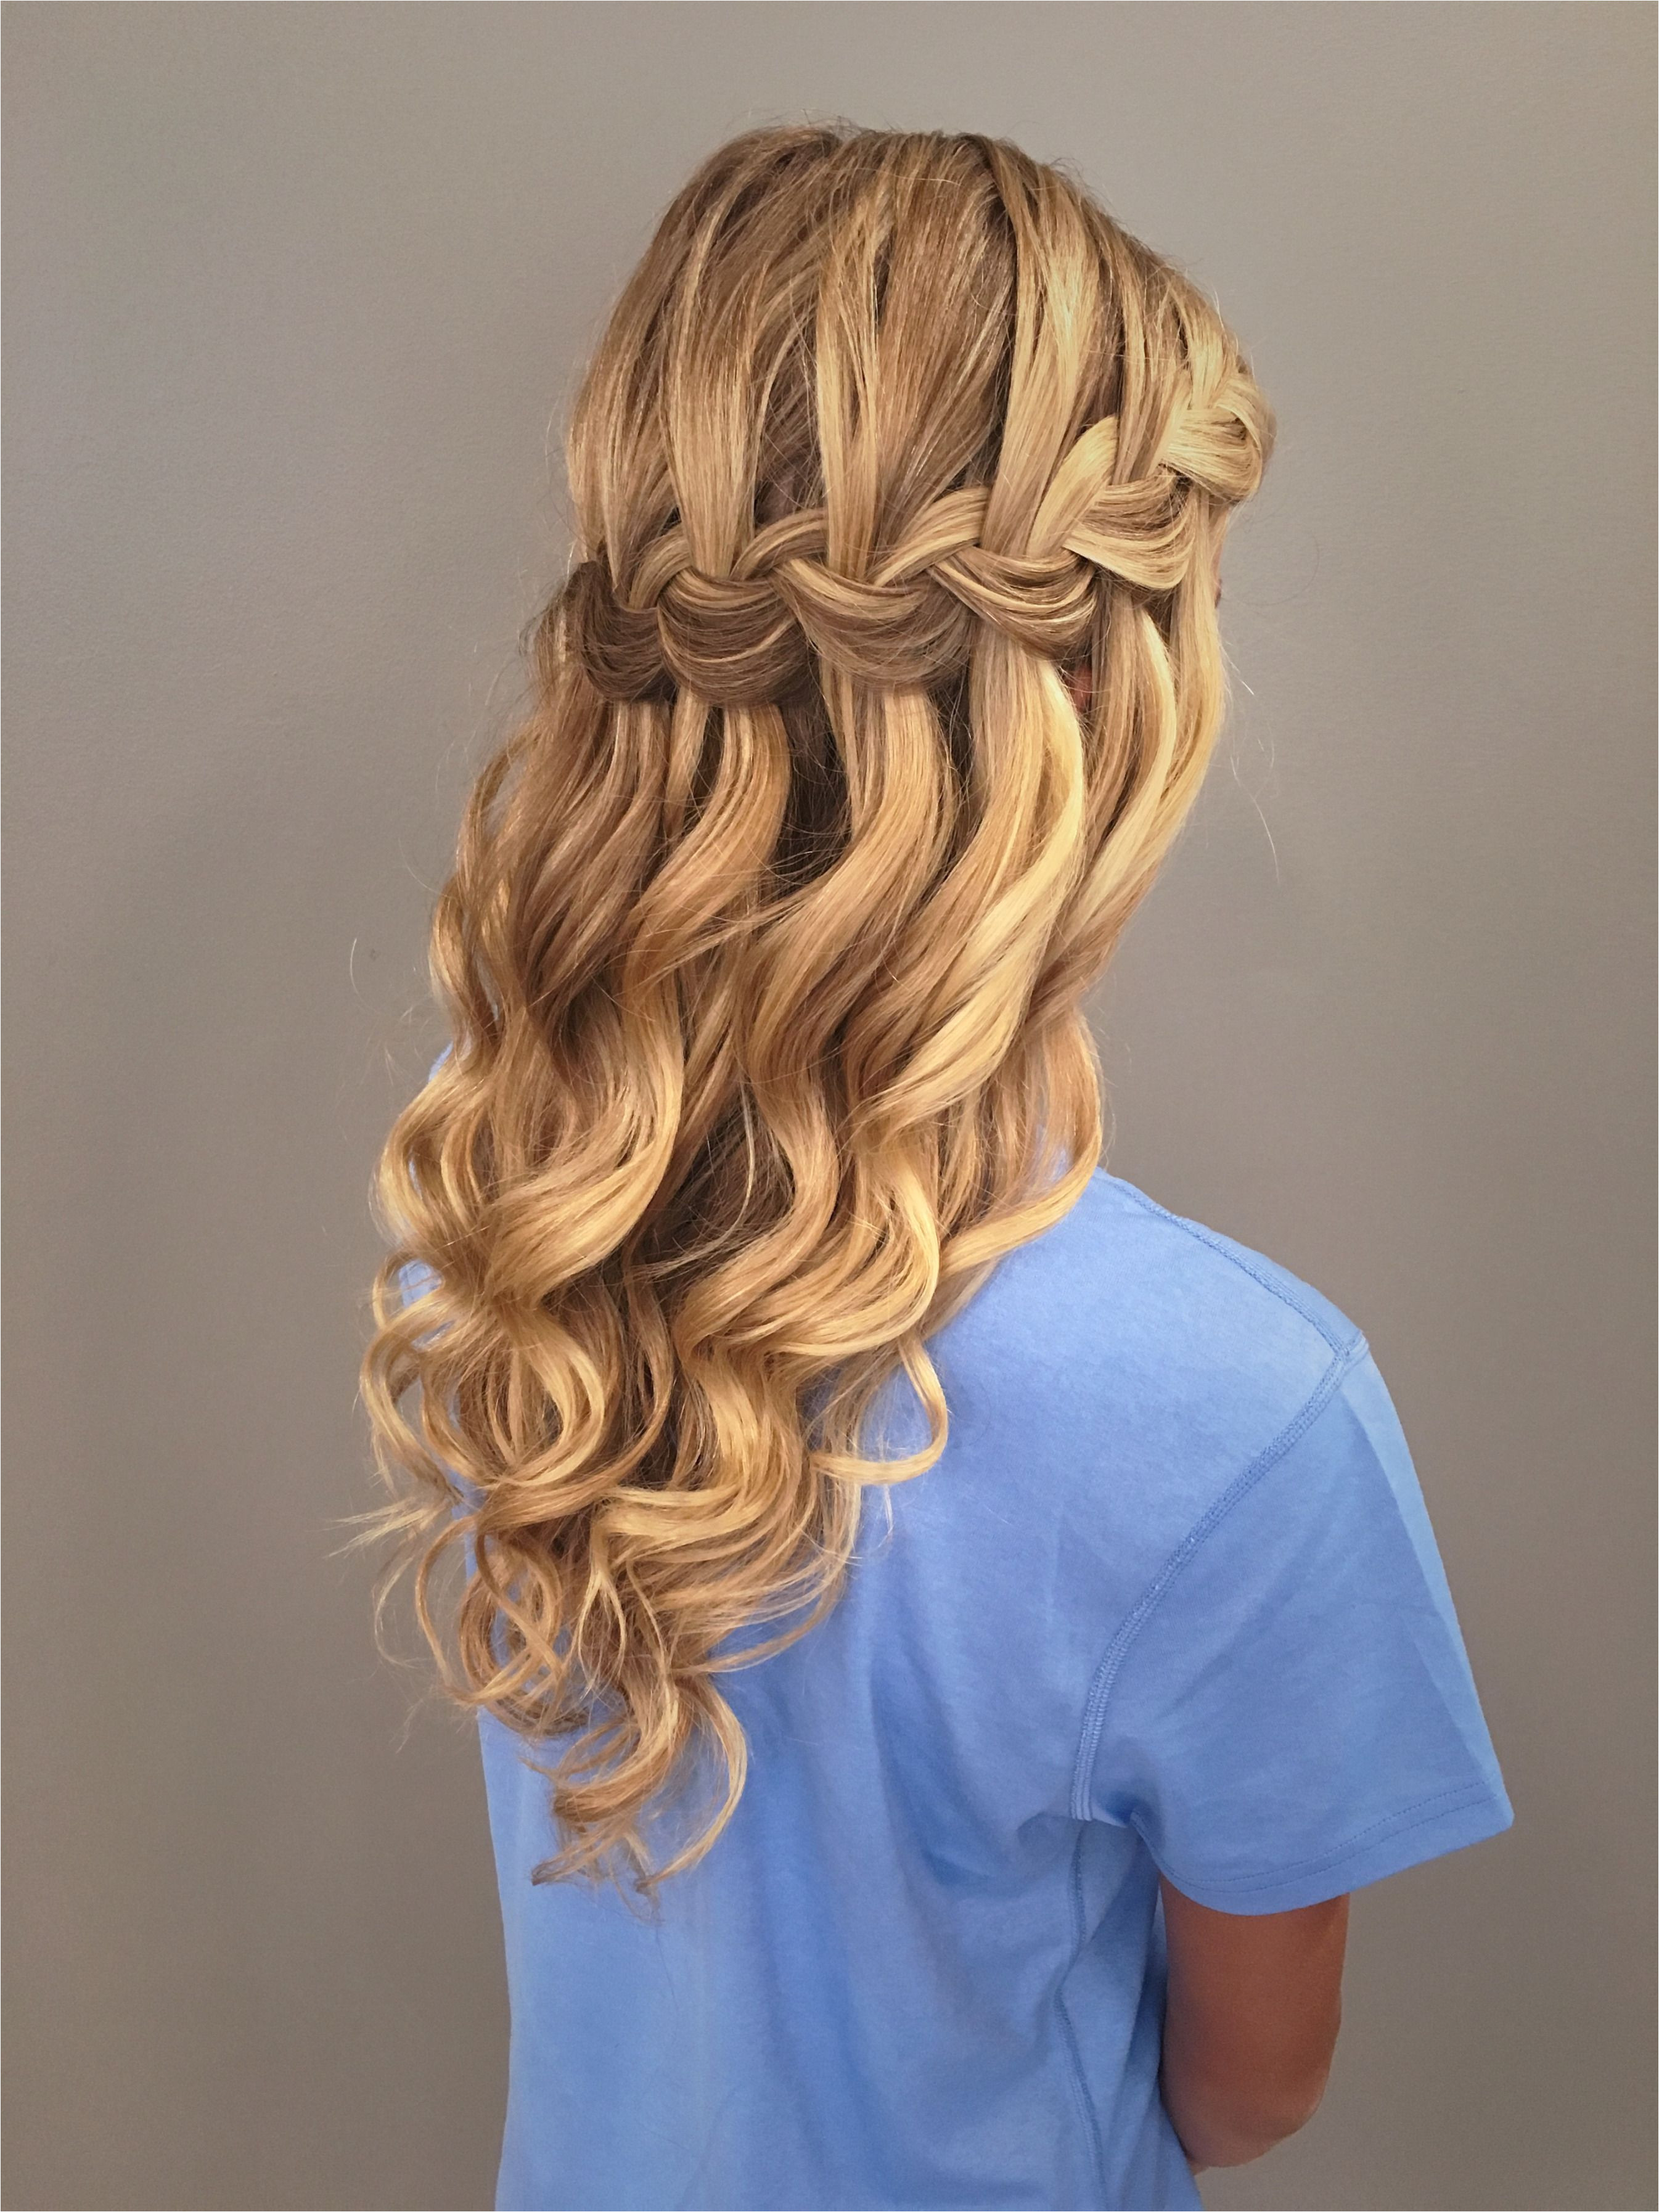 20 Cute Home ing Hairstyles 2018